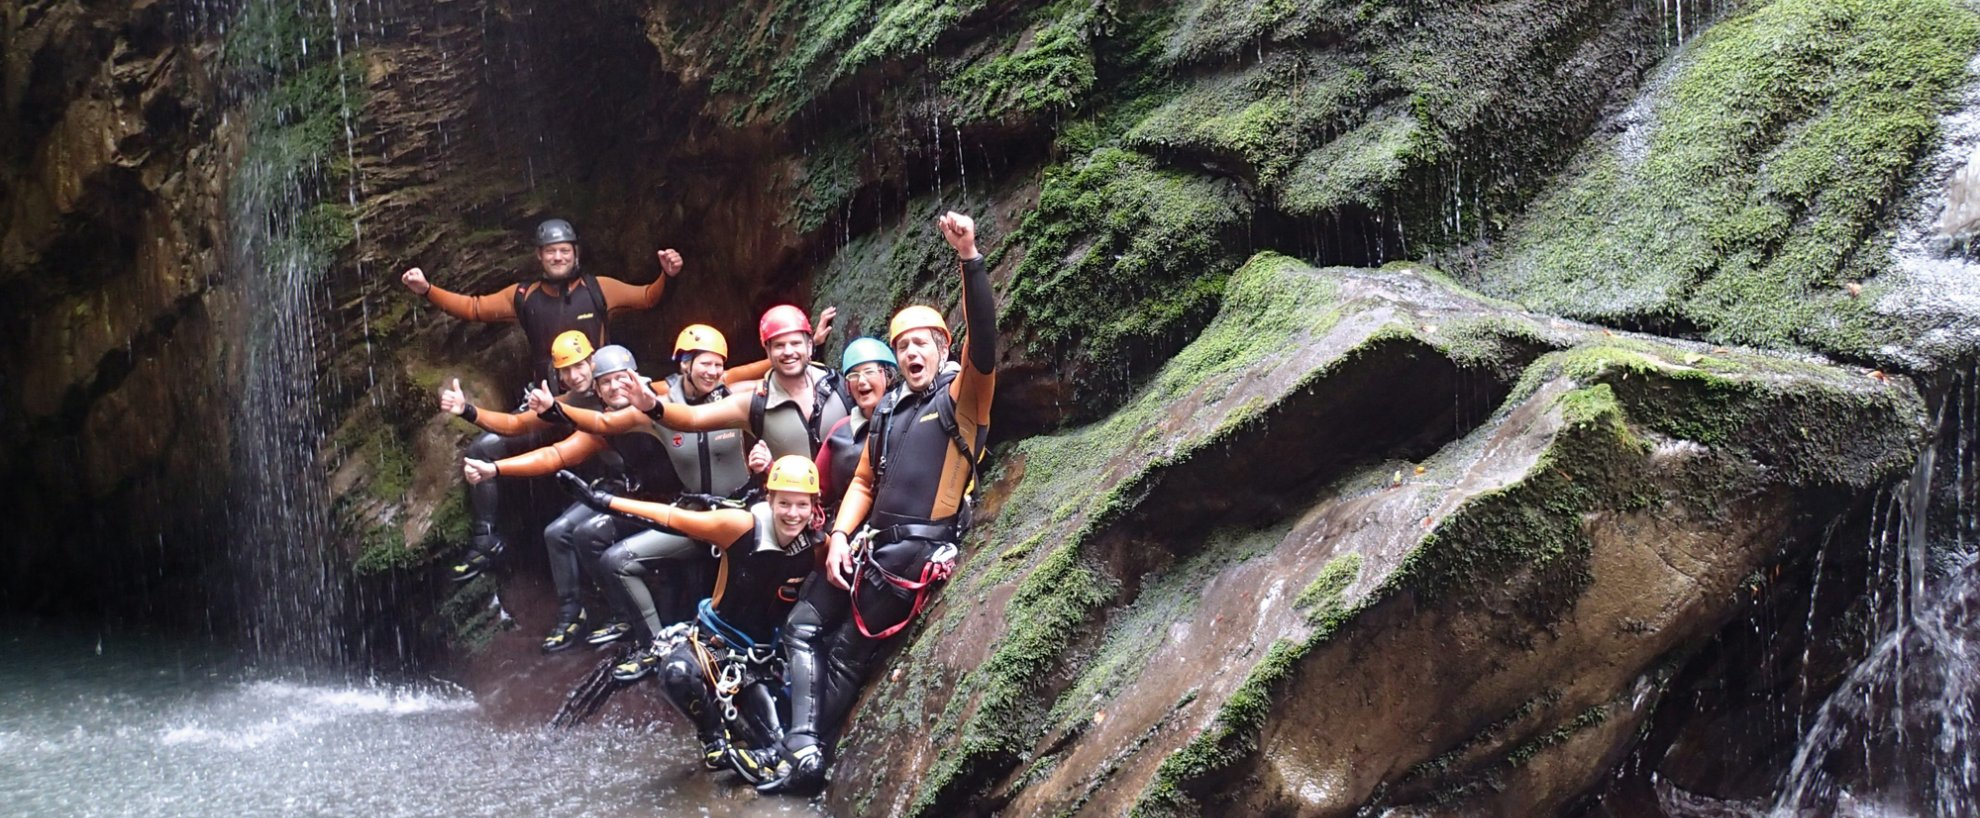 Portugal Madeira Hotel Galosol Canyoning